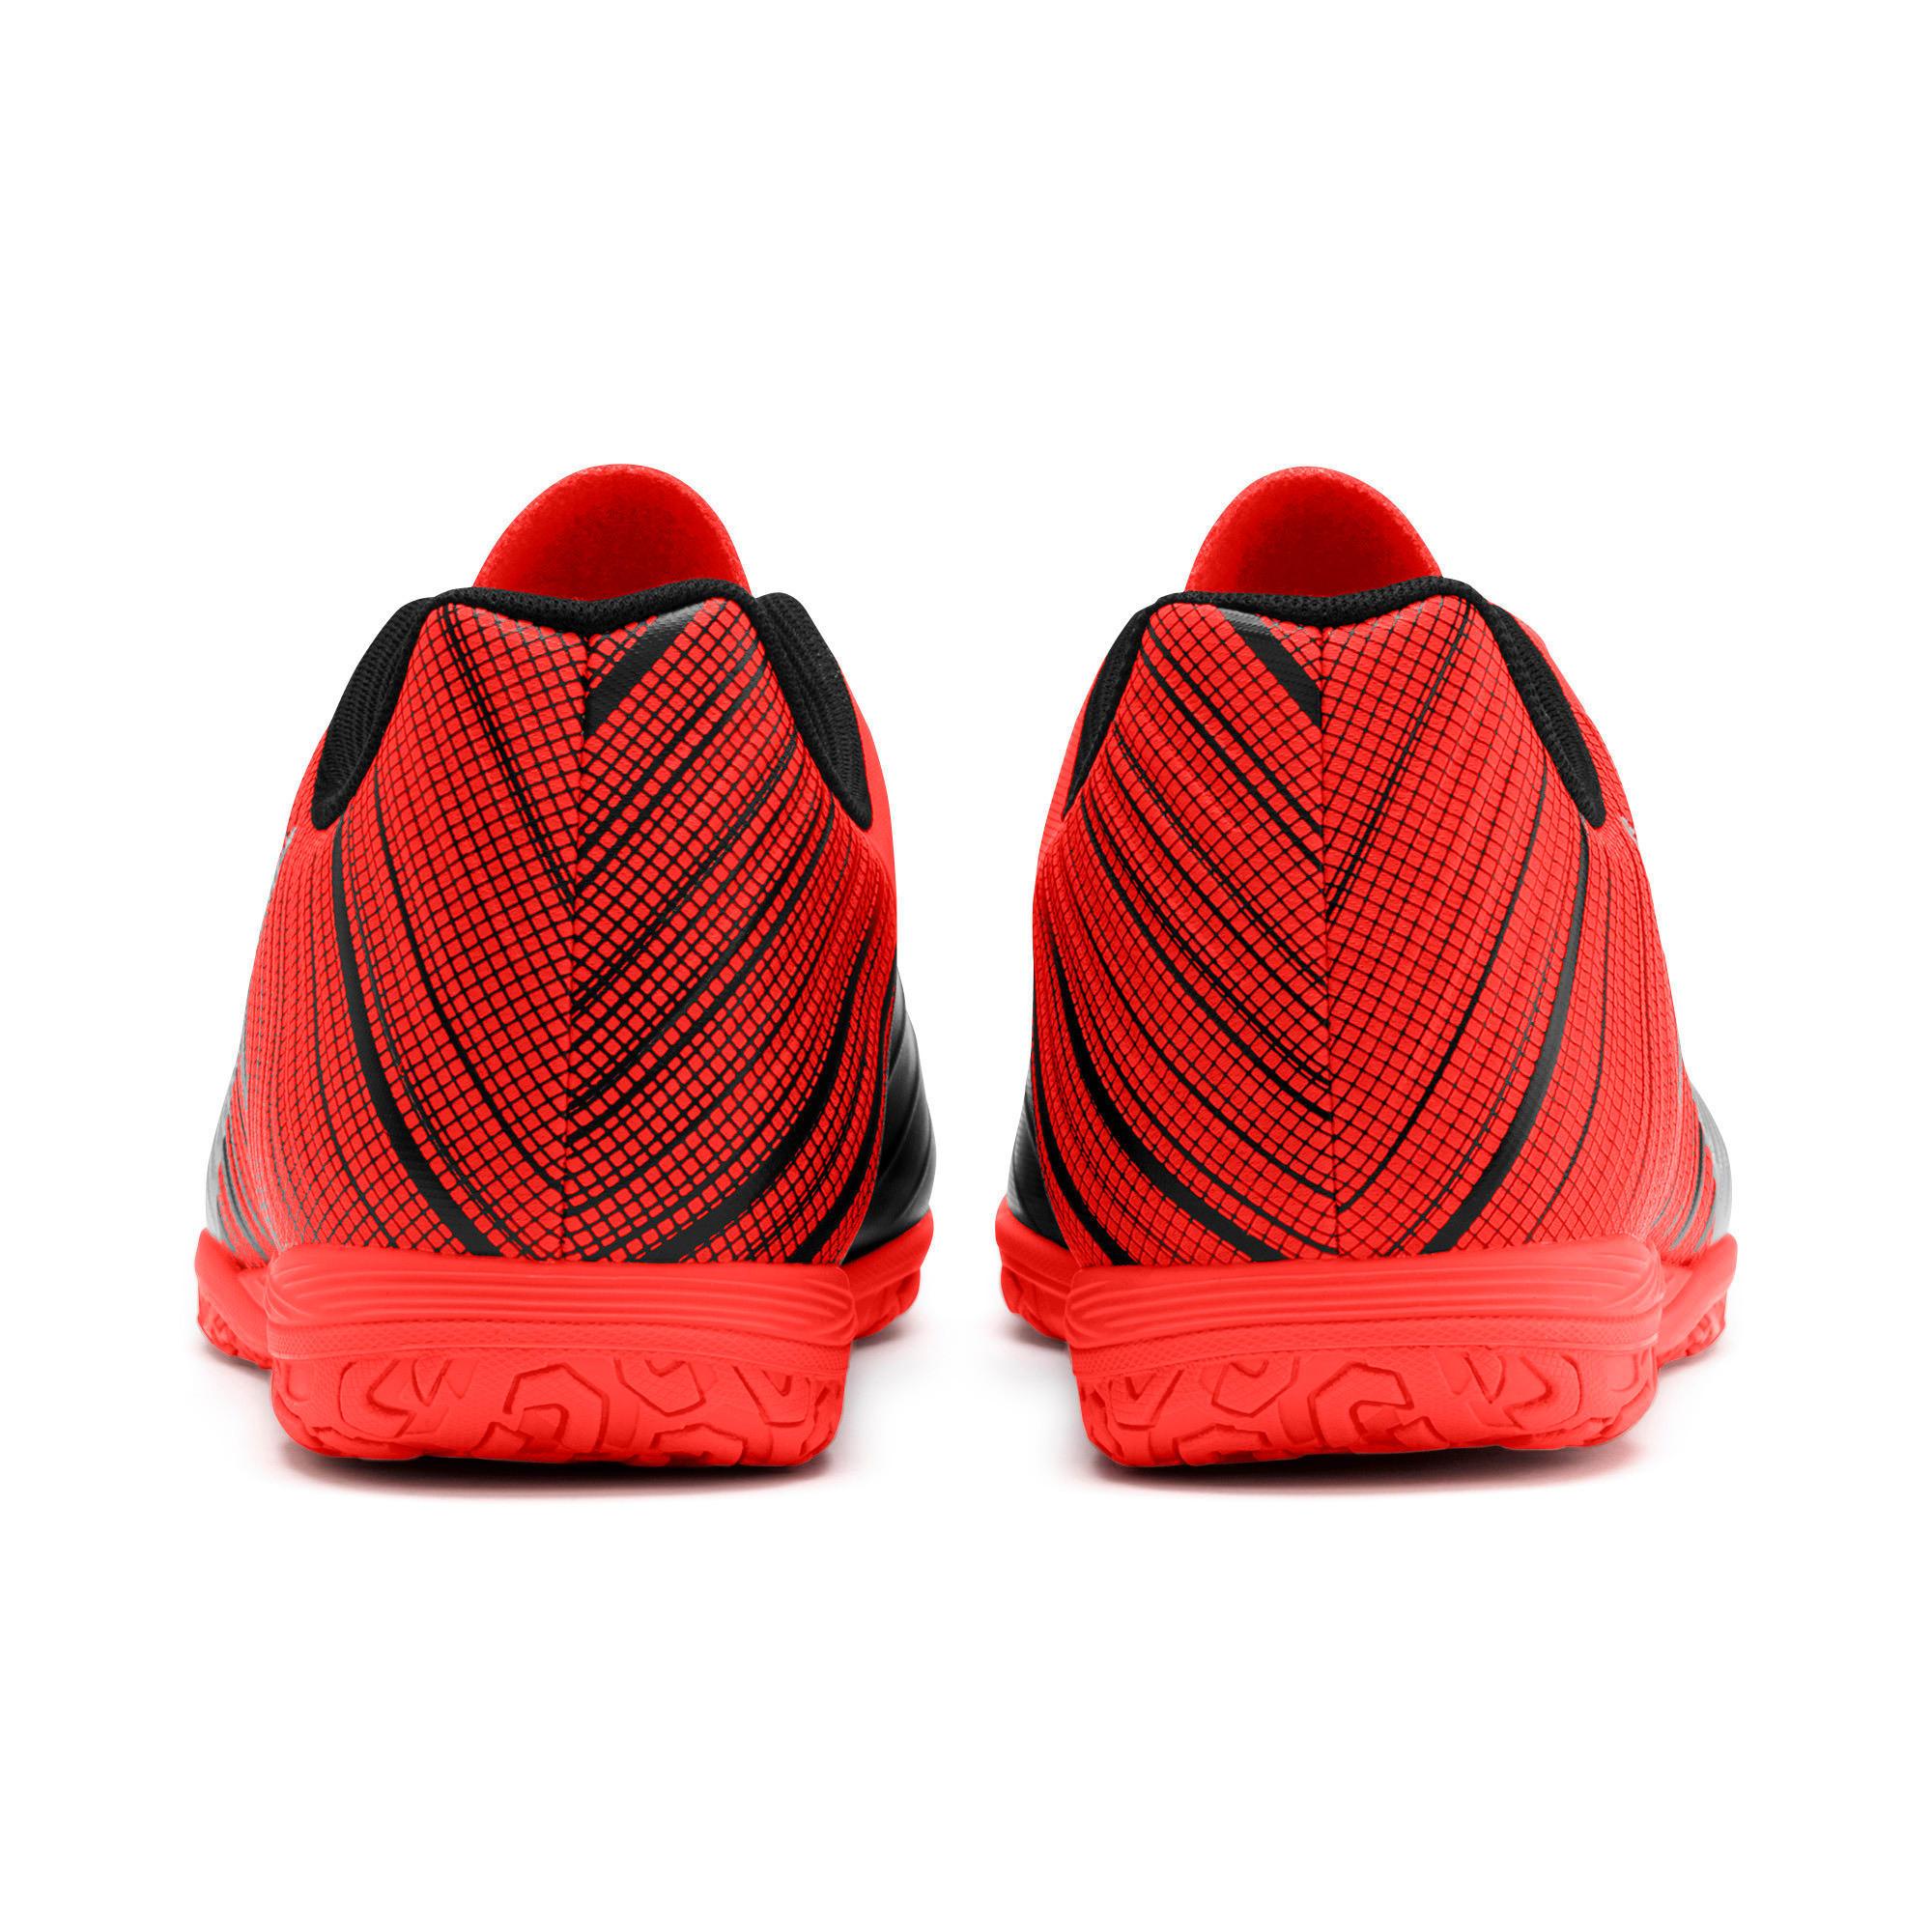 Thumbnail 5 of PUMA ONE 5.4 IT Men's Football Boots, Black-Nrgy Red-Aged Silver, medium-IND